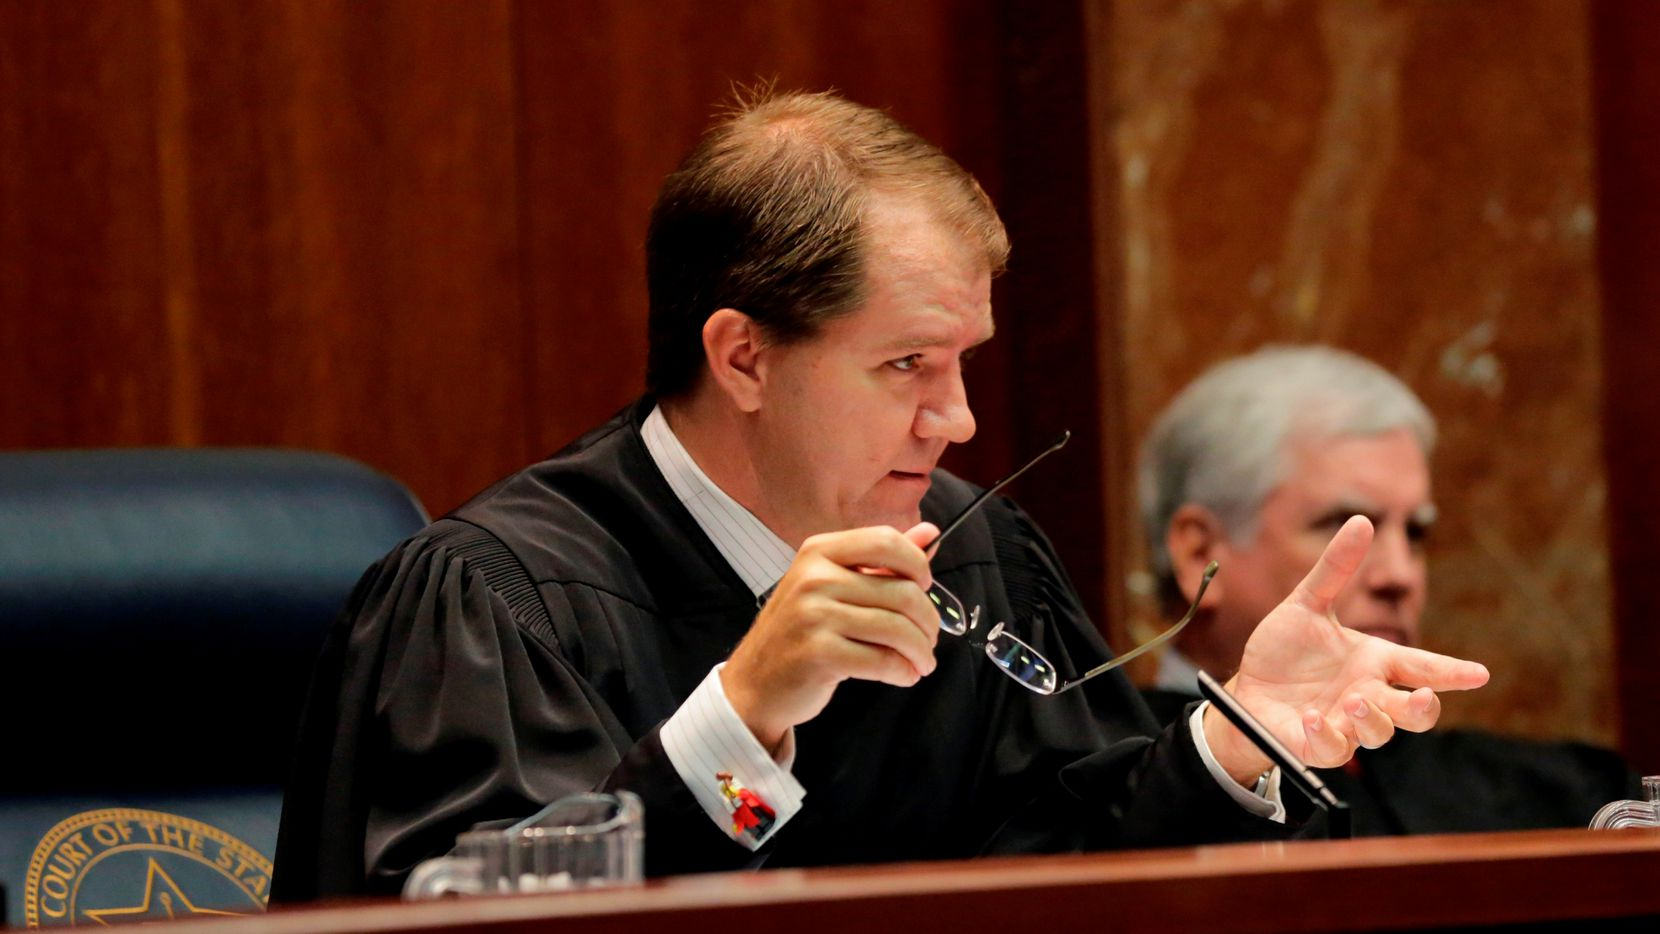 Texas Supreme Court Justice Don Willett (left) has drawn attention in recent days for his inclusion on a list of potential U.S. Supreme Court nominees by Republican presidential candidate Donald Trump. (Eric Gay/The Associated Press)